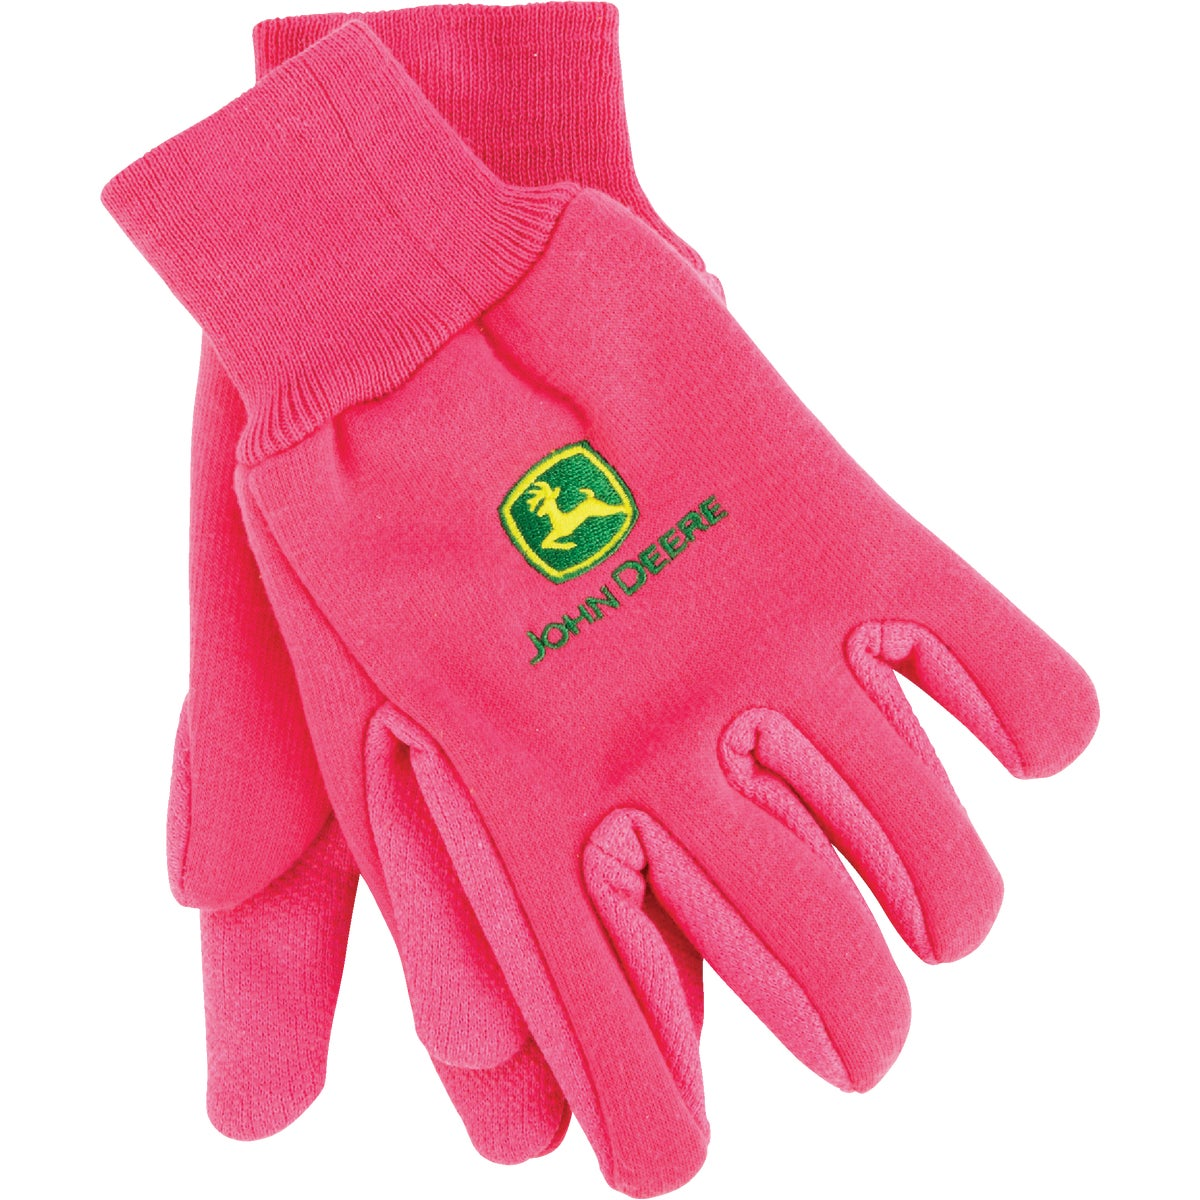 LADY PINK JERSEY GLOVE - JD00003/W by West Chester Incom